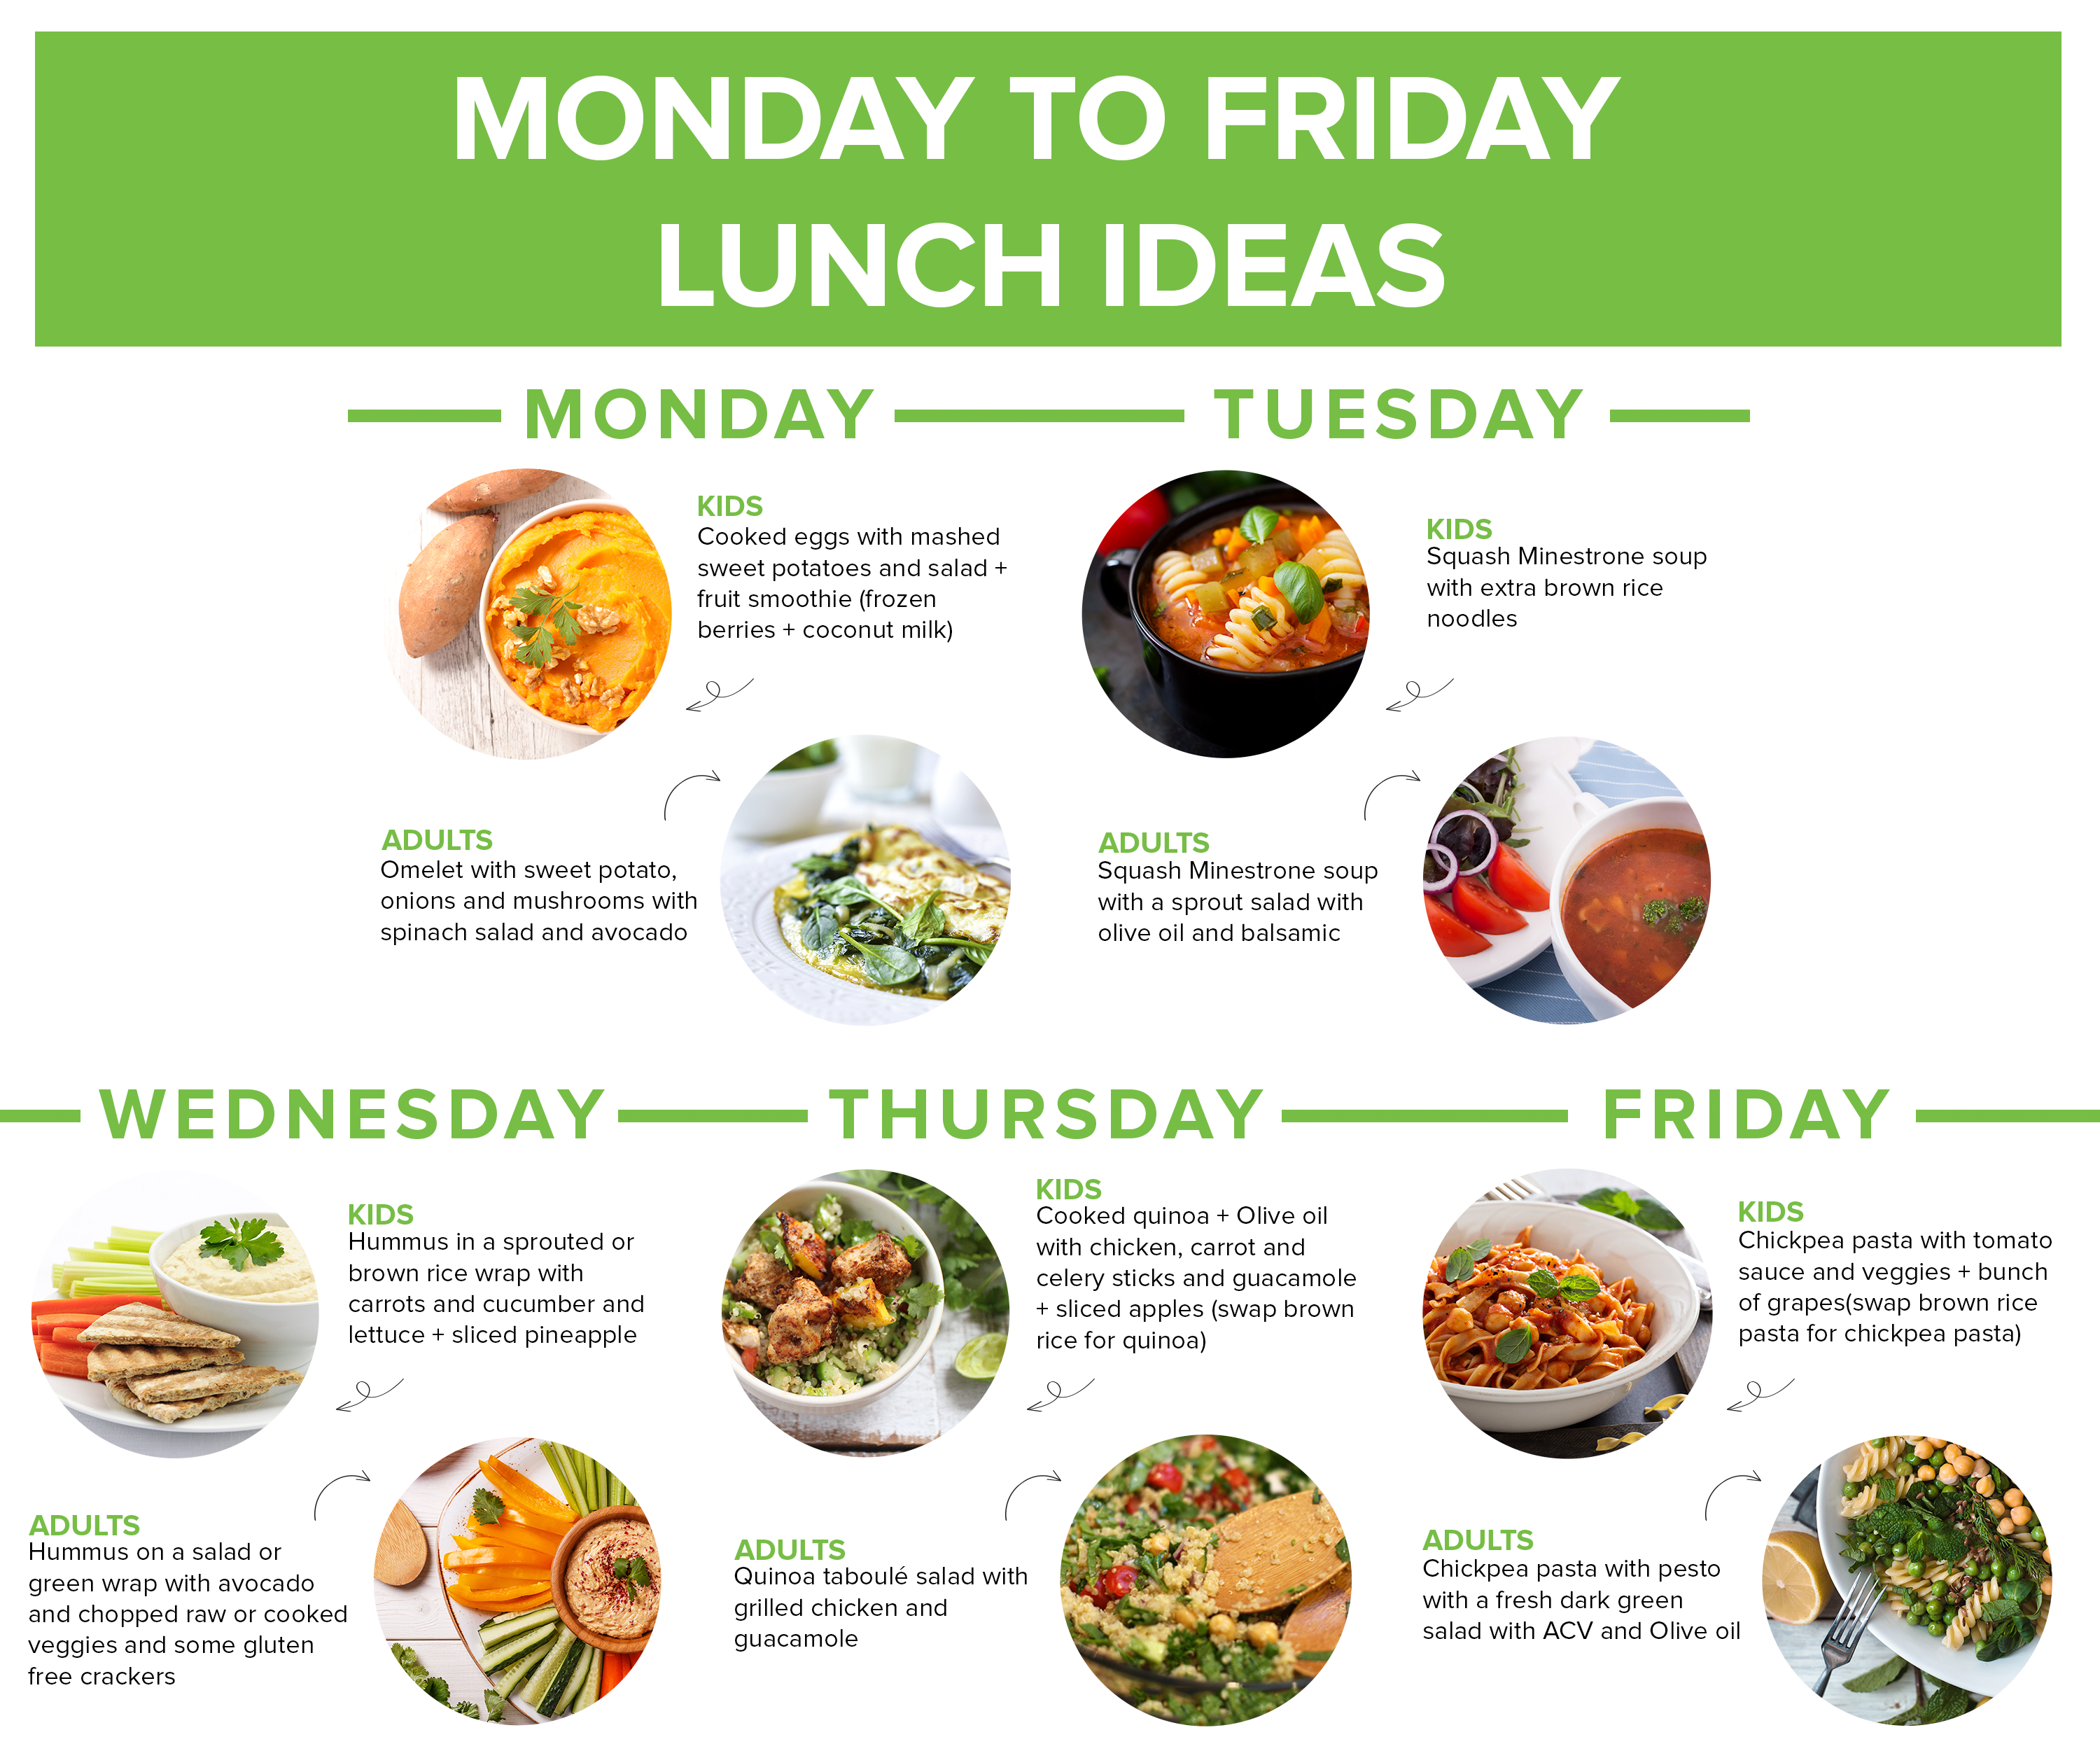 Monday to Friday Lunch Ideas - WellBeing by Well.ca